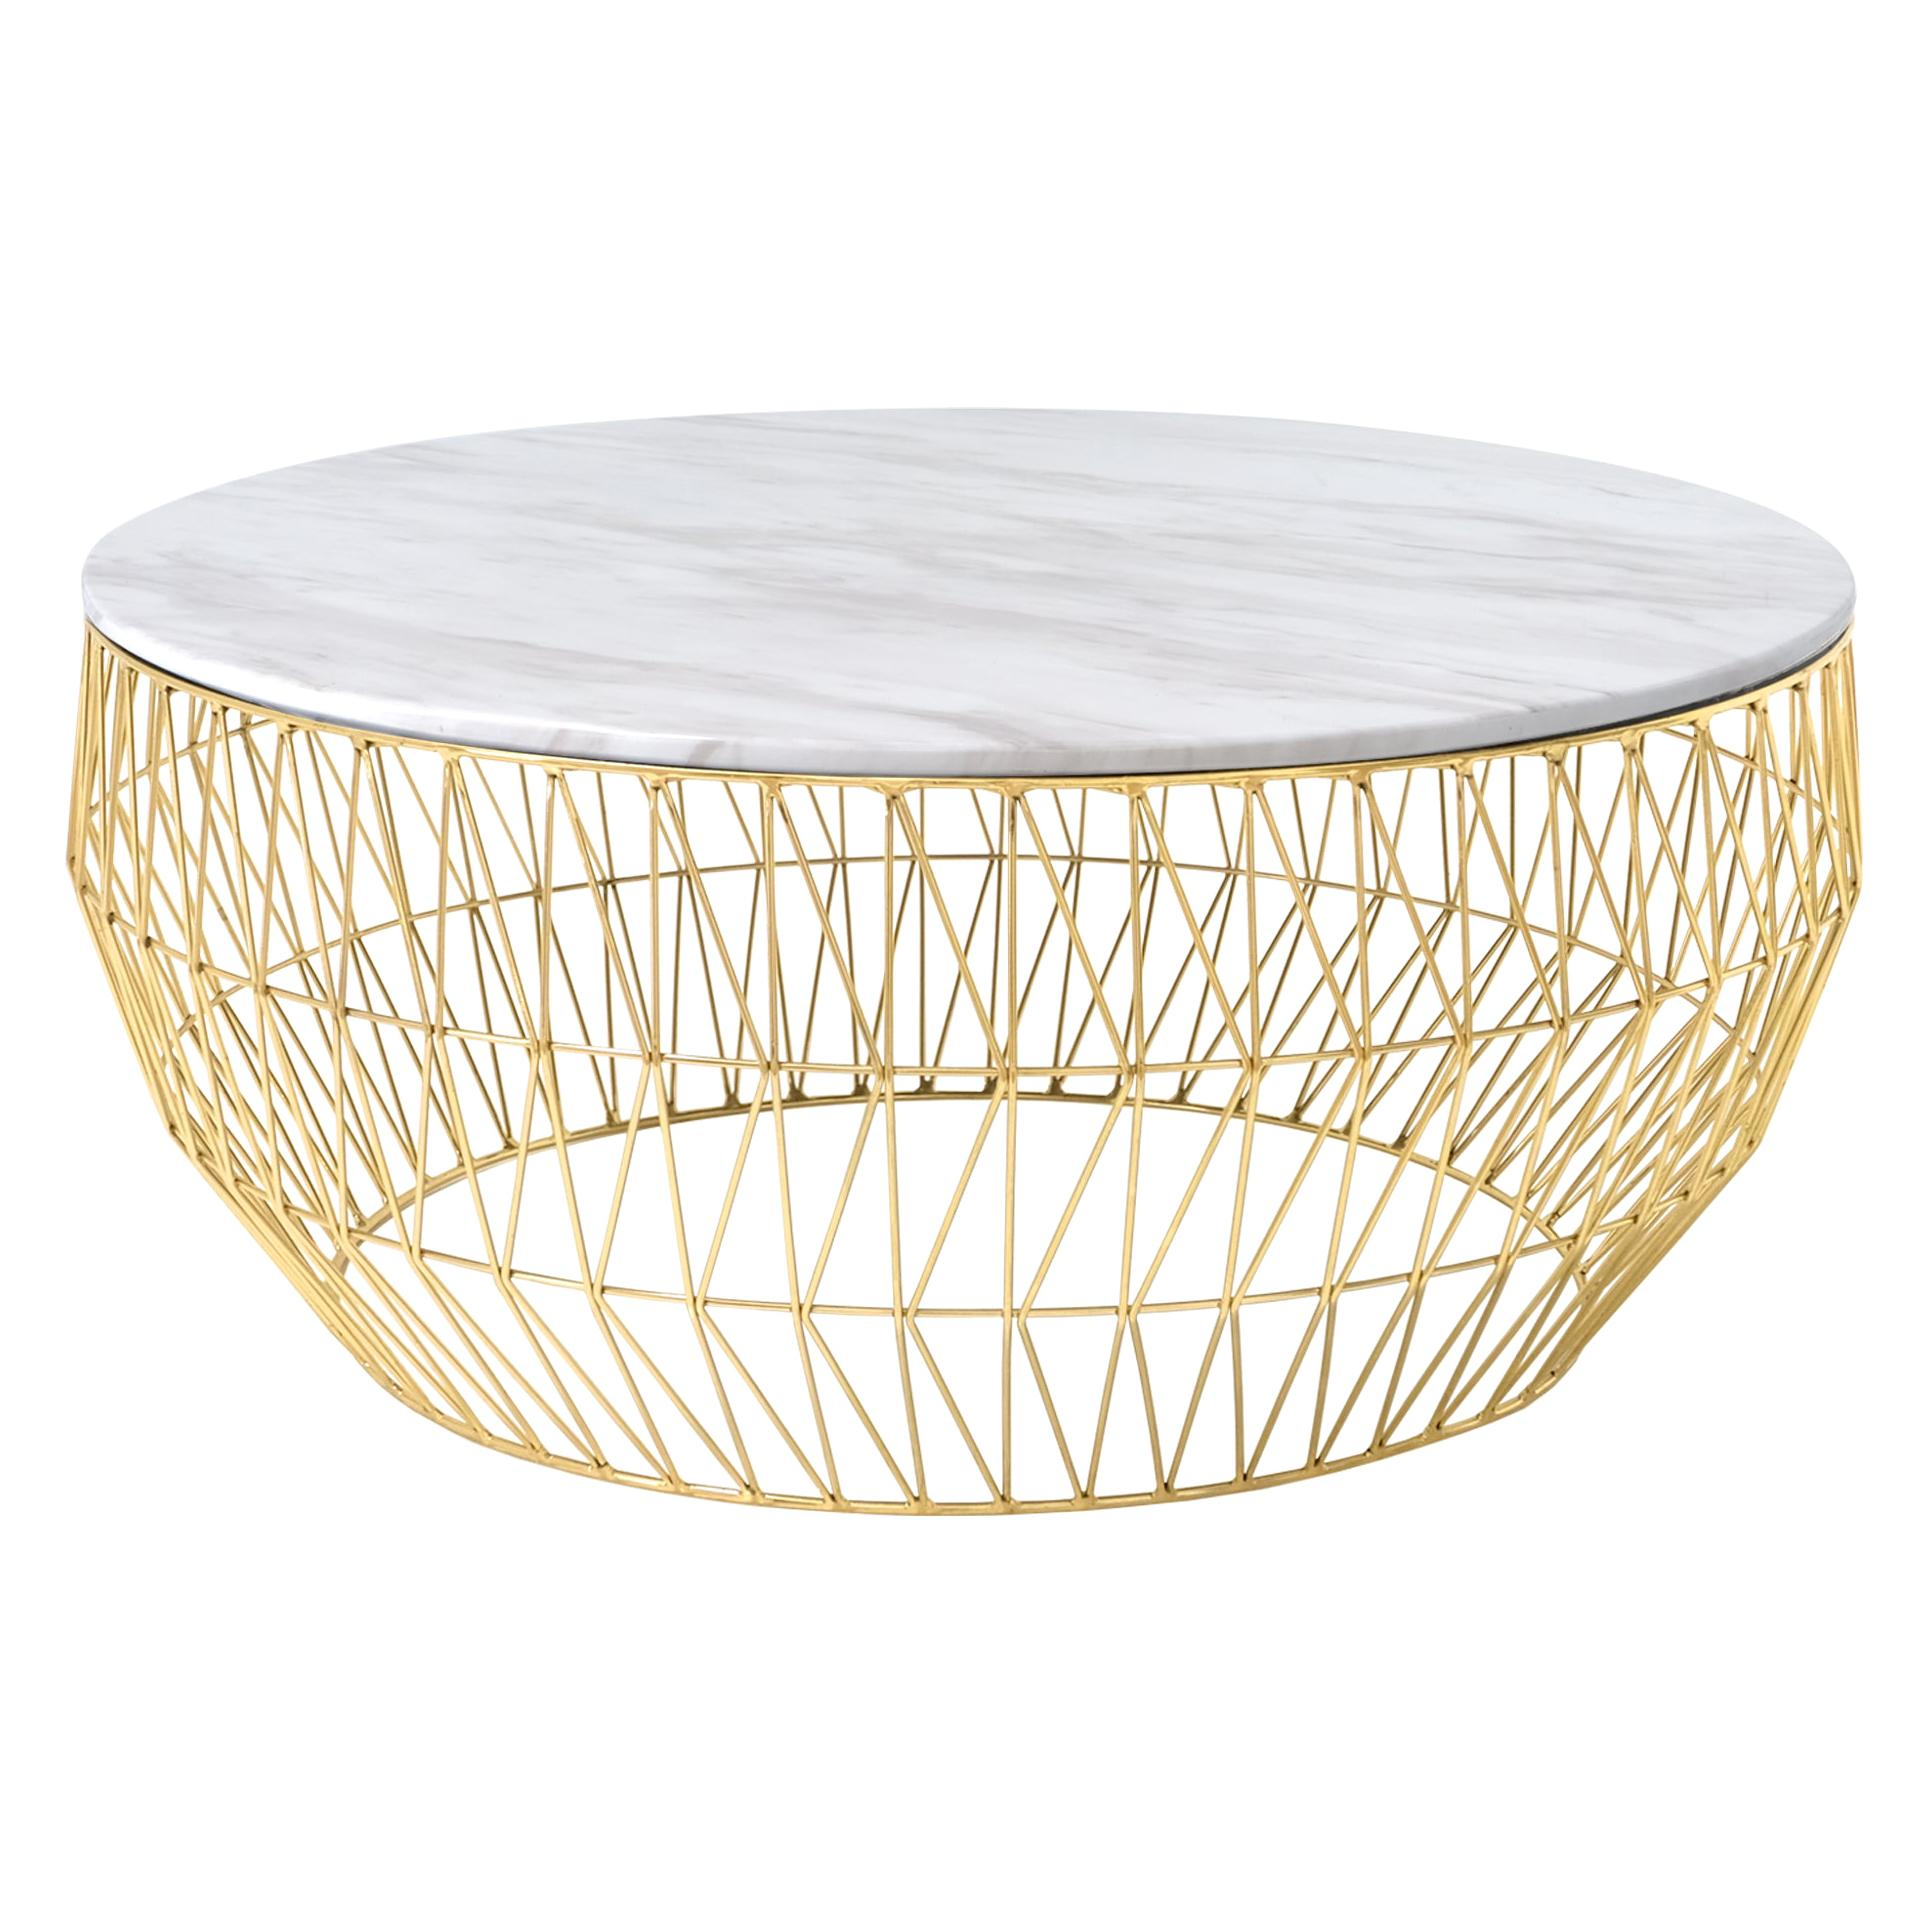 Minimalist Coffee Table, Wire Center Table in Gold with White Marble